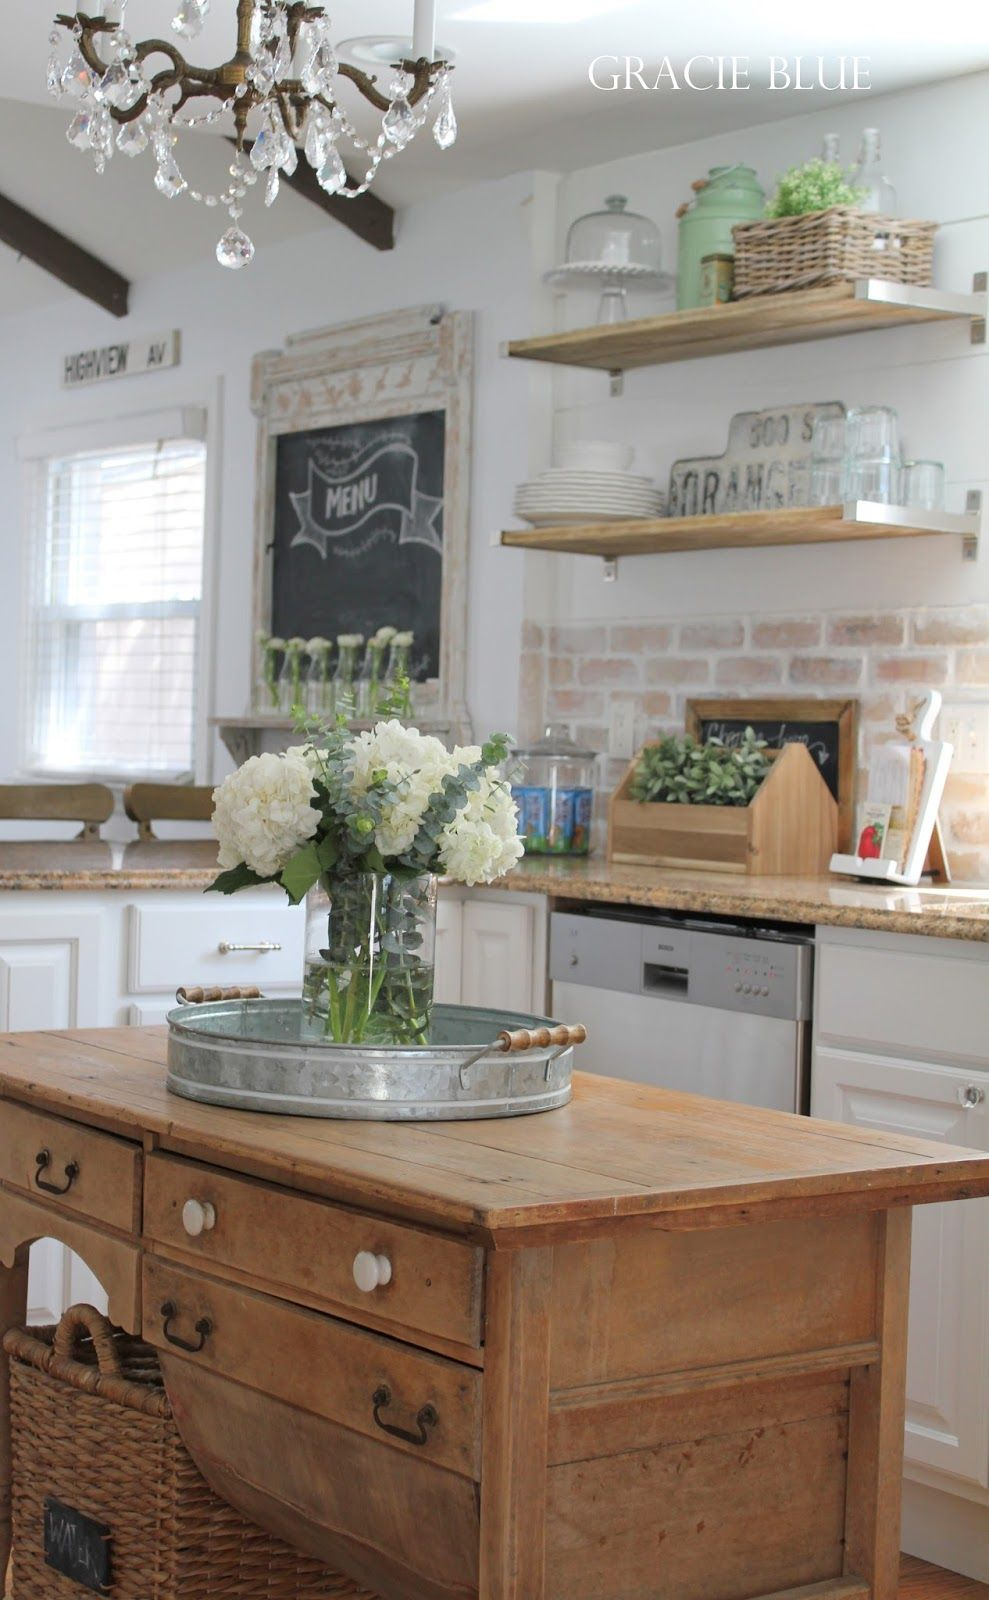 Gracie blue spring home tour white kitchen reveal kitchen